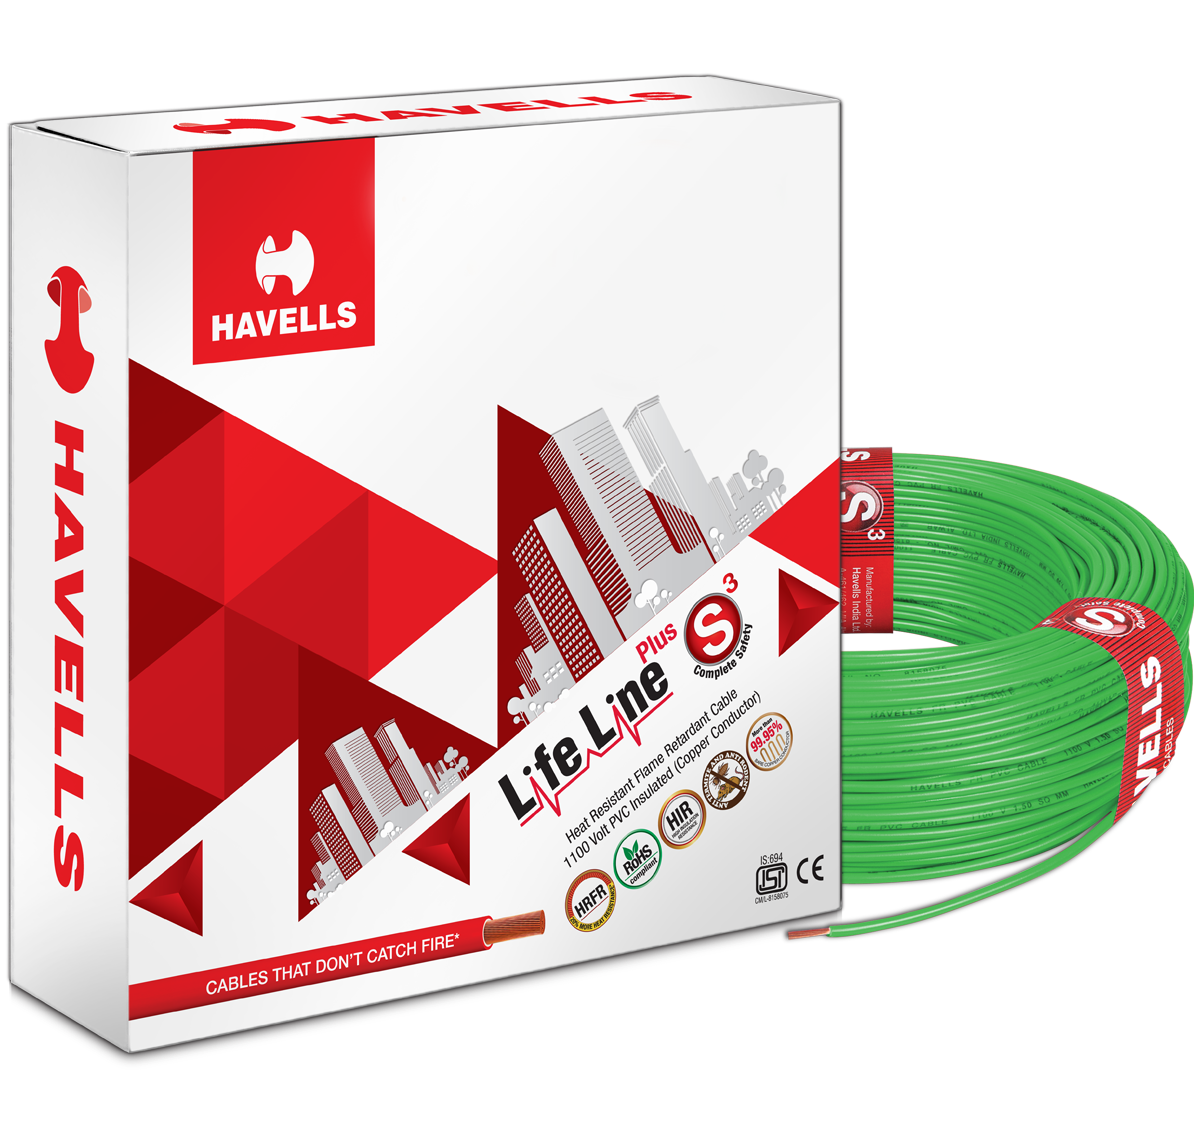 Life Line Plus S3 HRFR Cables (Green)